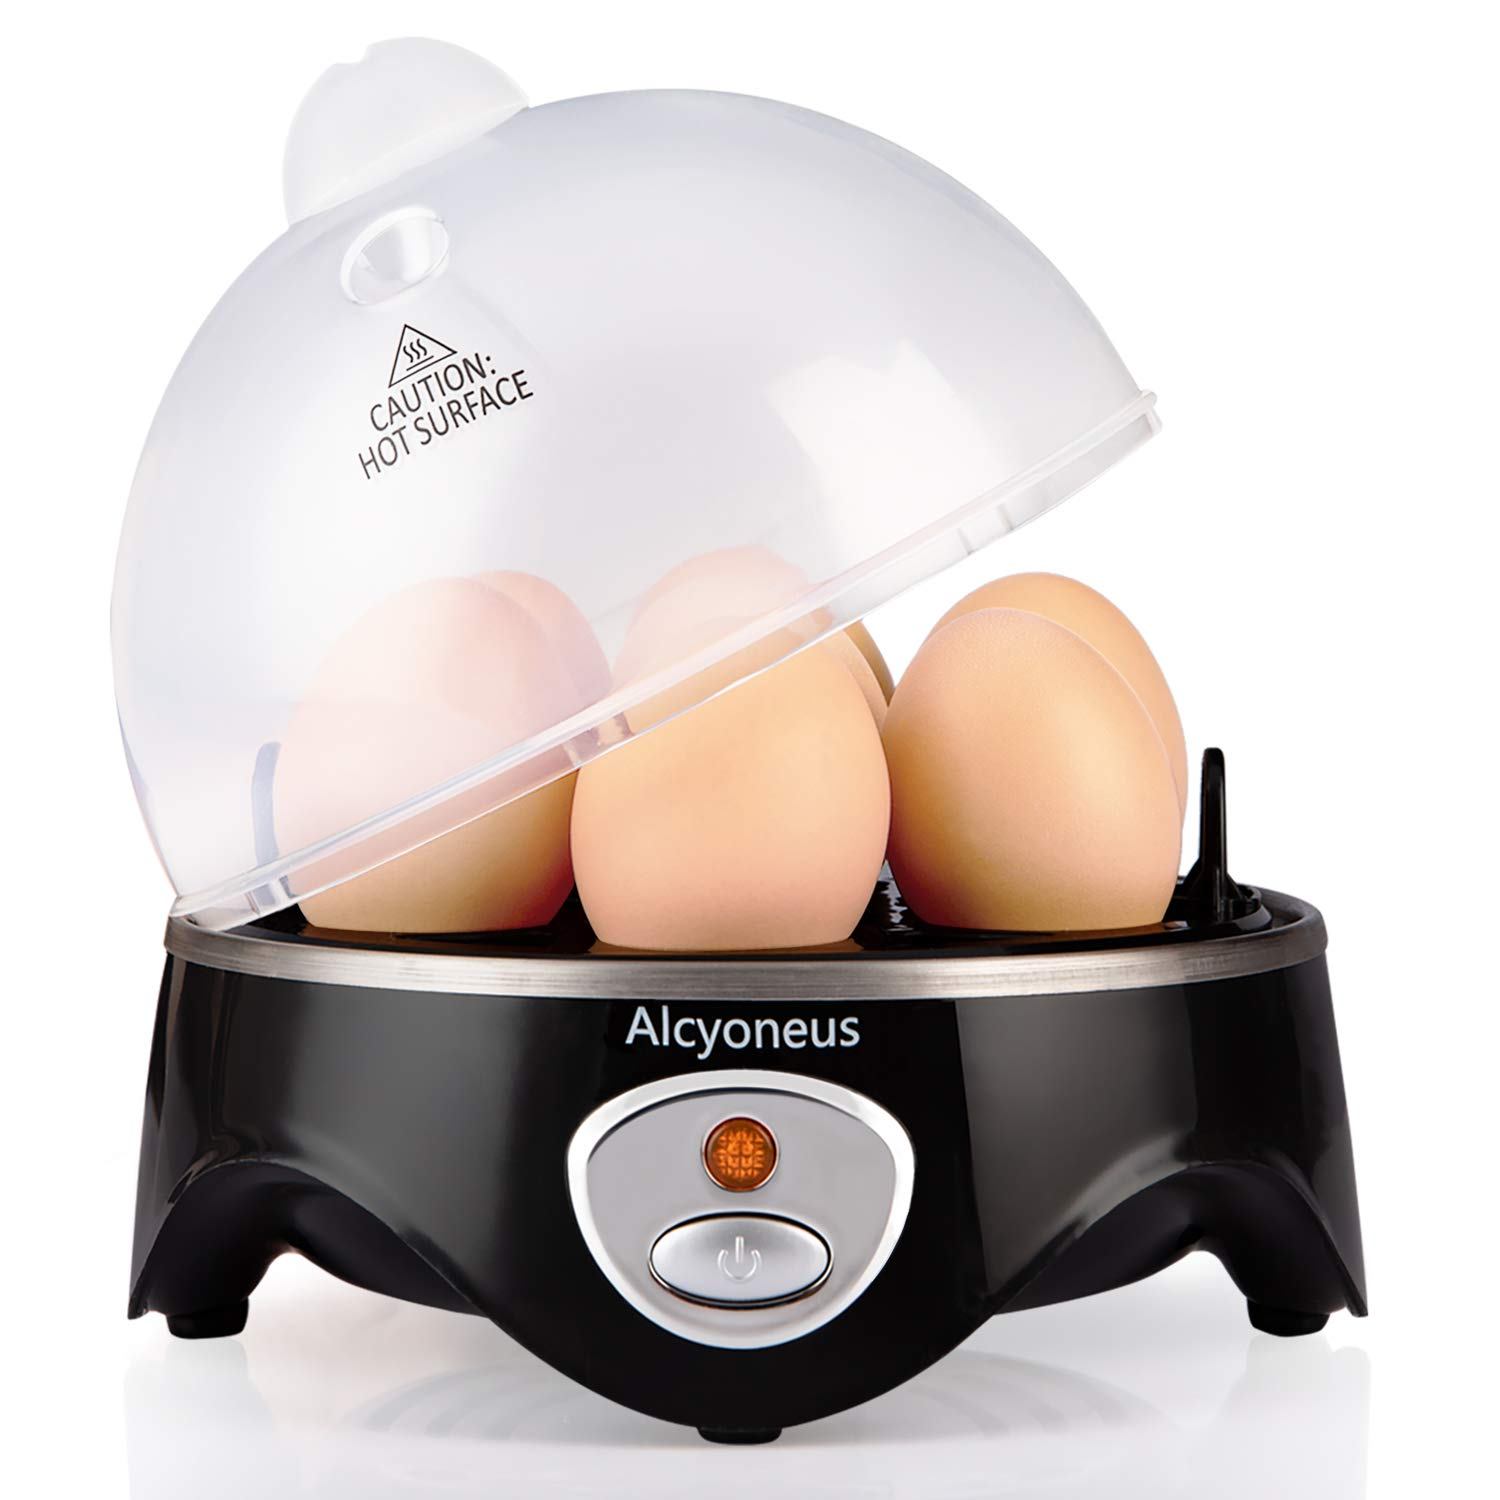 Alcyoneus Rapid Egg Cooker, Electric Egg Boiler, Noise-Free Hard Boiled Egg Cooker with Auto Shut Off & 7-Capacity, Suitable for Poached Egg, Scrambled Eggs, Omelets - Black by Alcyoneus